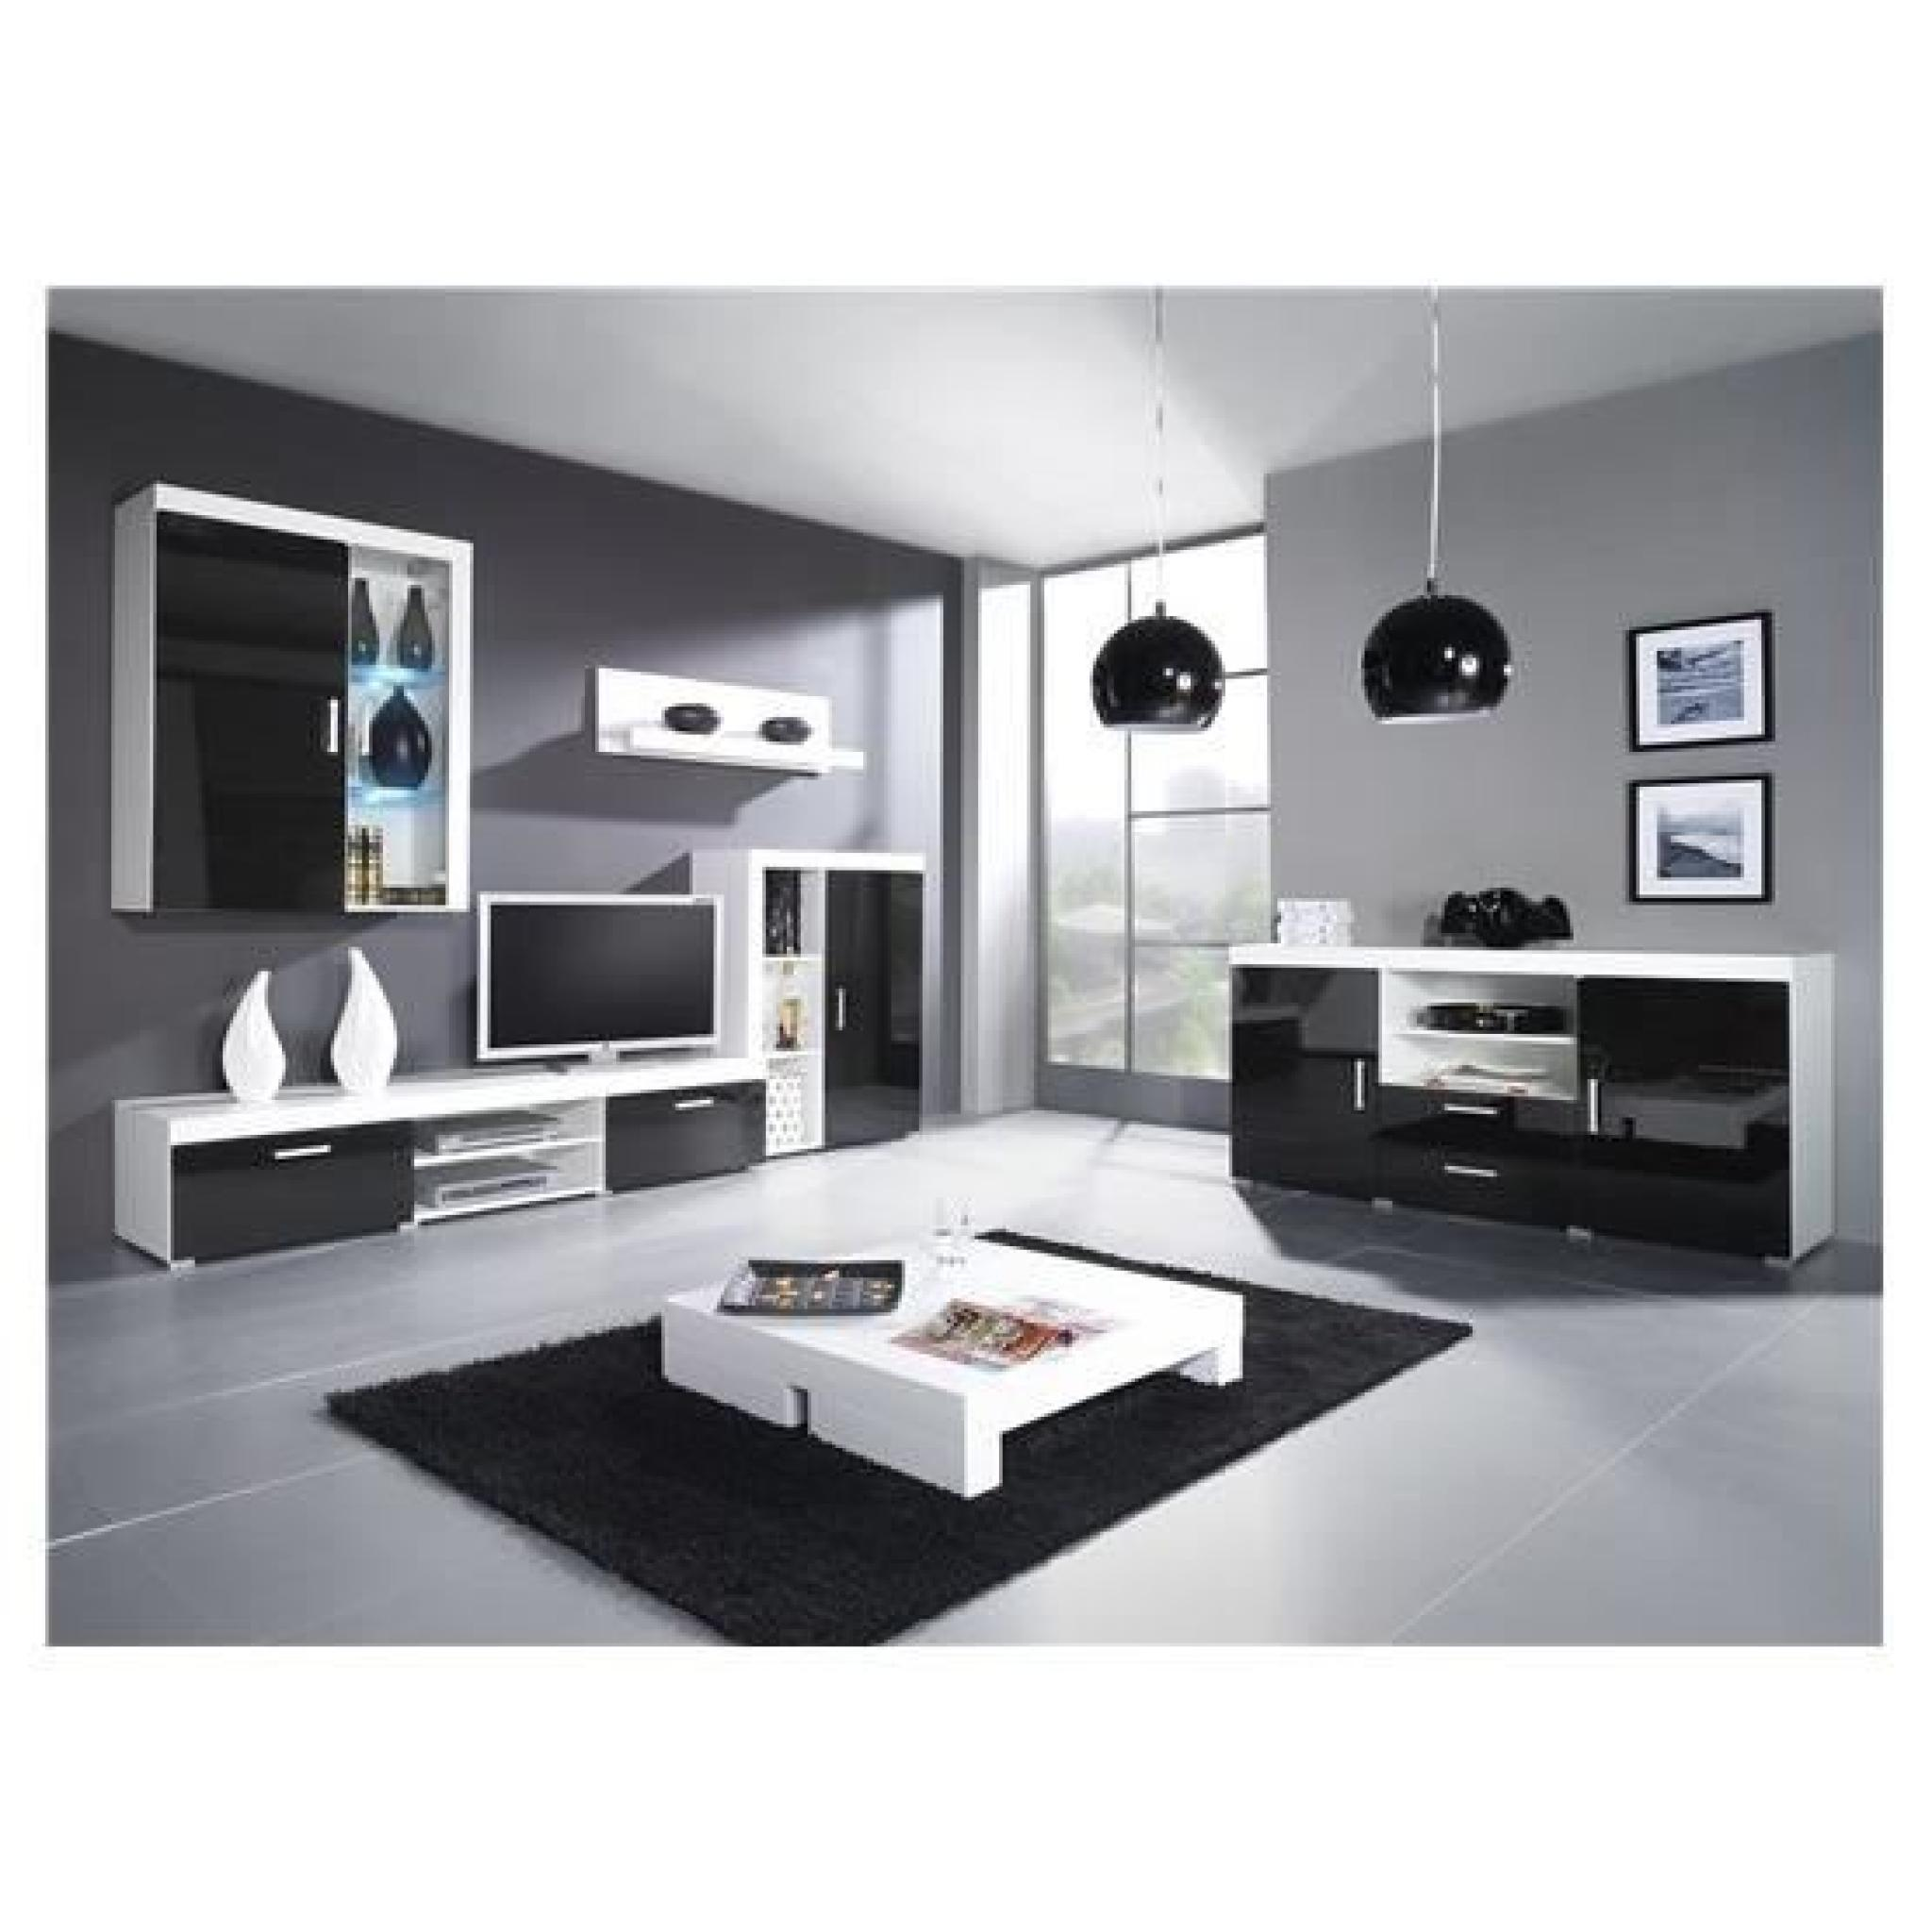 meuble tv design pas cher blanc id es de d coration int rieure french decor. Black Bedroom Furniture Sets. Home Design Ideas